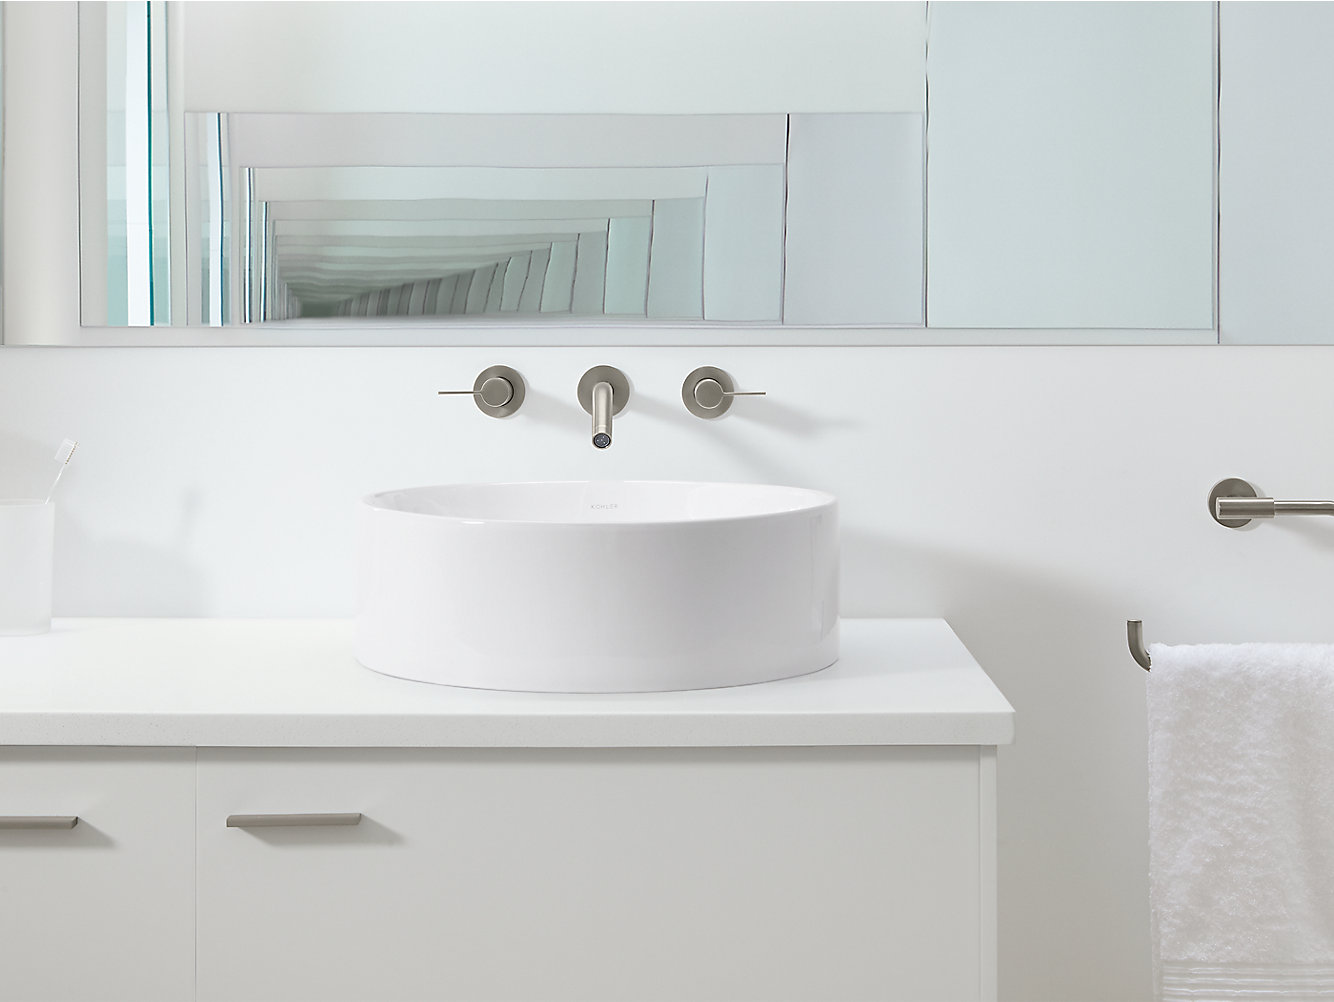 Vox Round Vessel Bathroom Sink